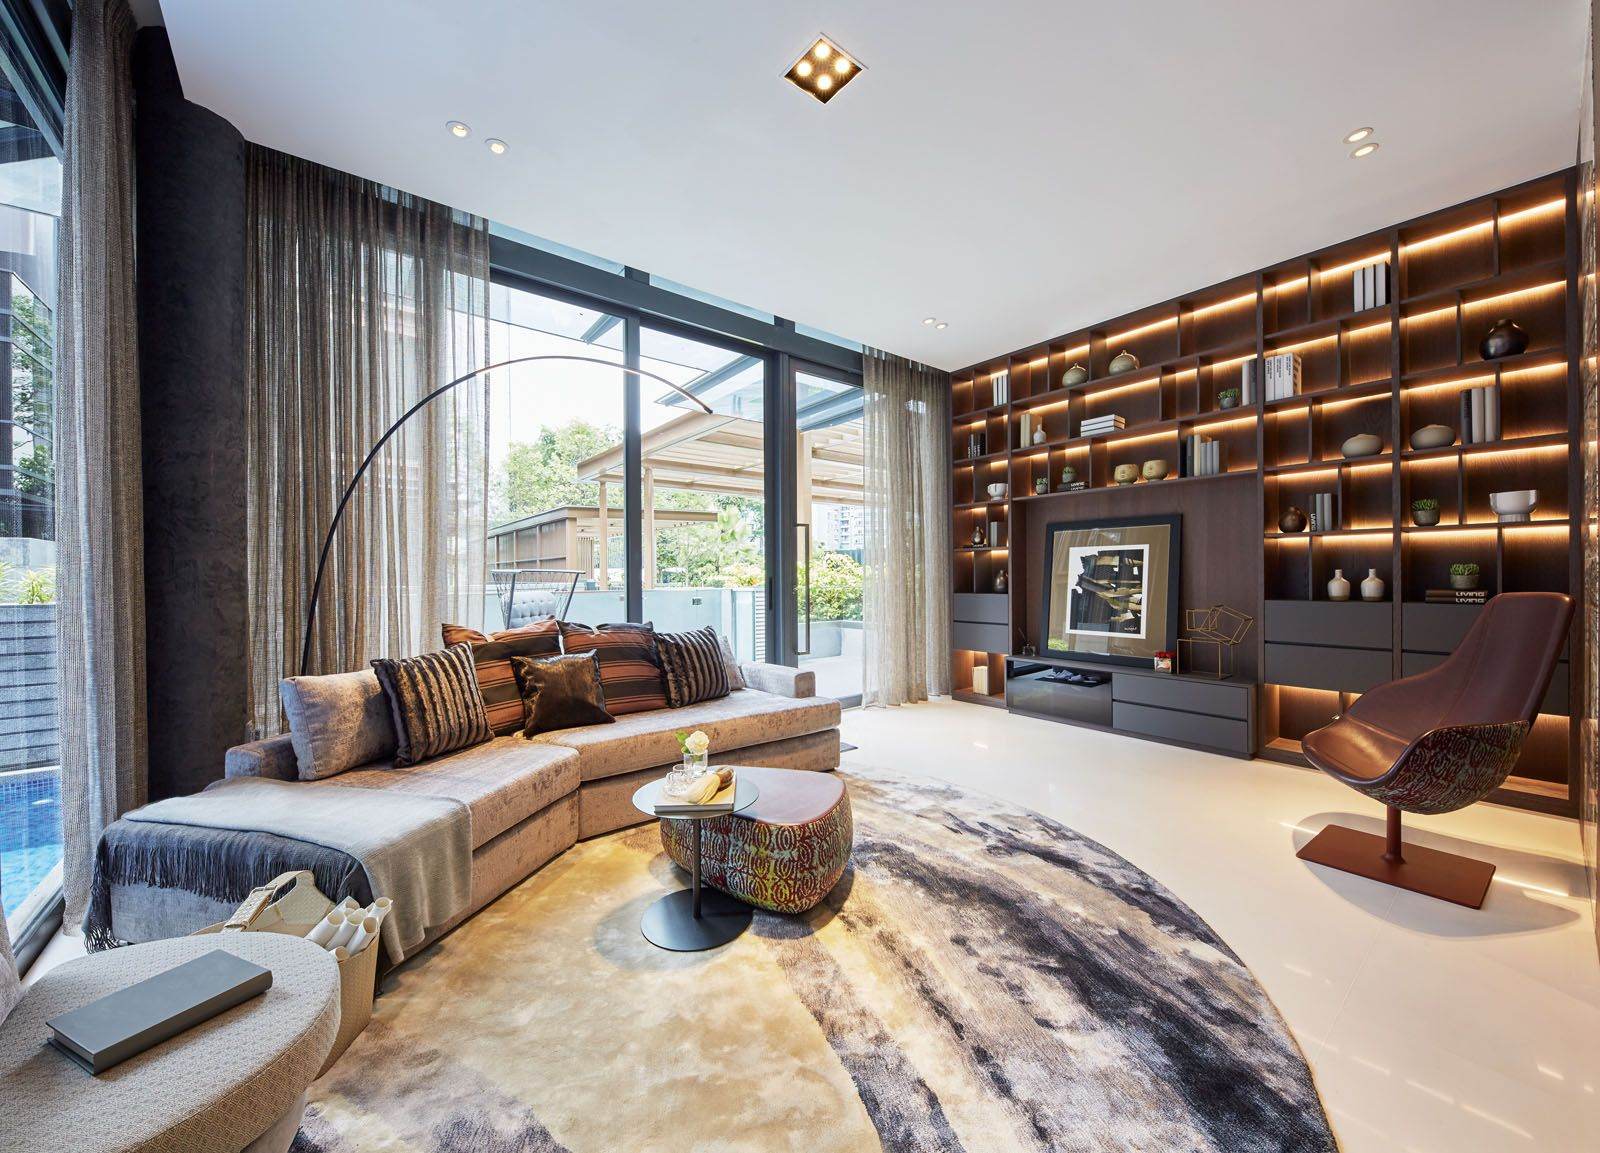 The custom-made rug anchors the living area while adding a tactile touch